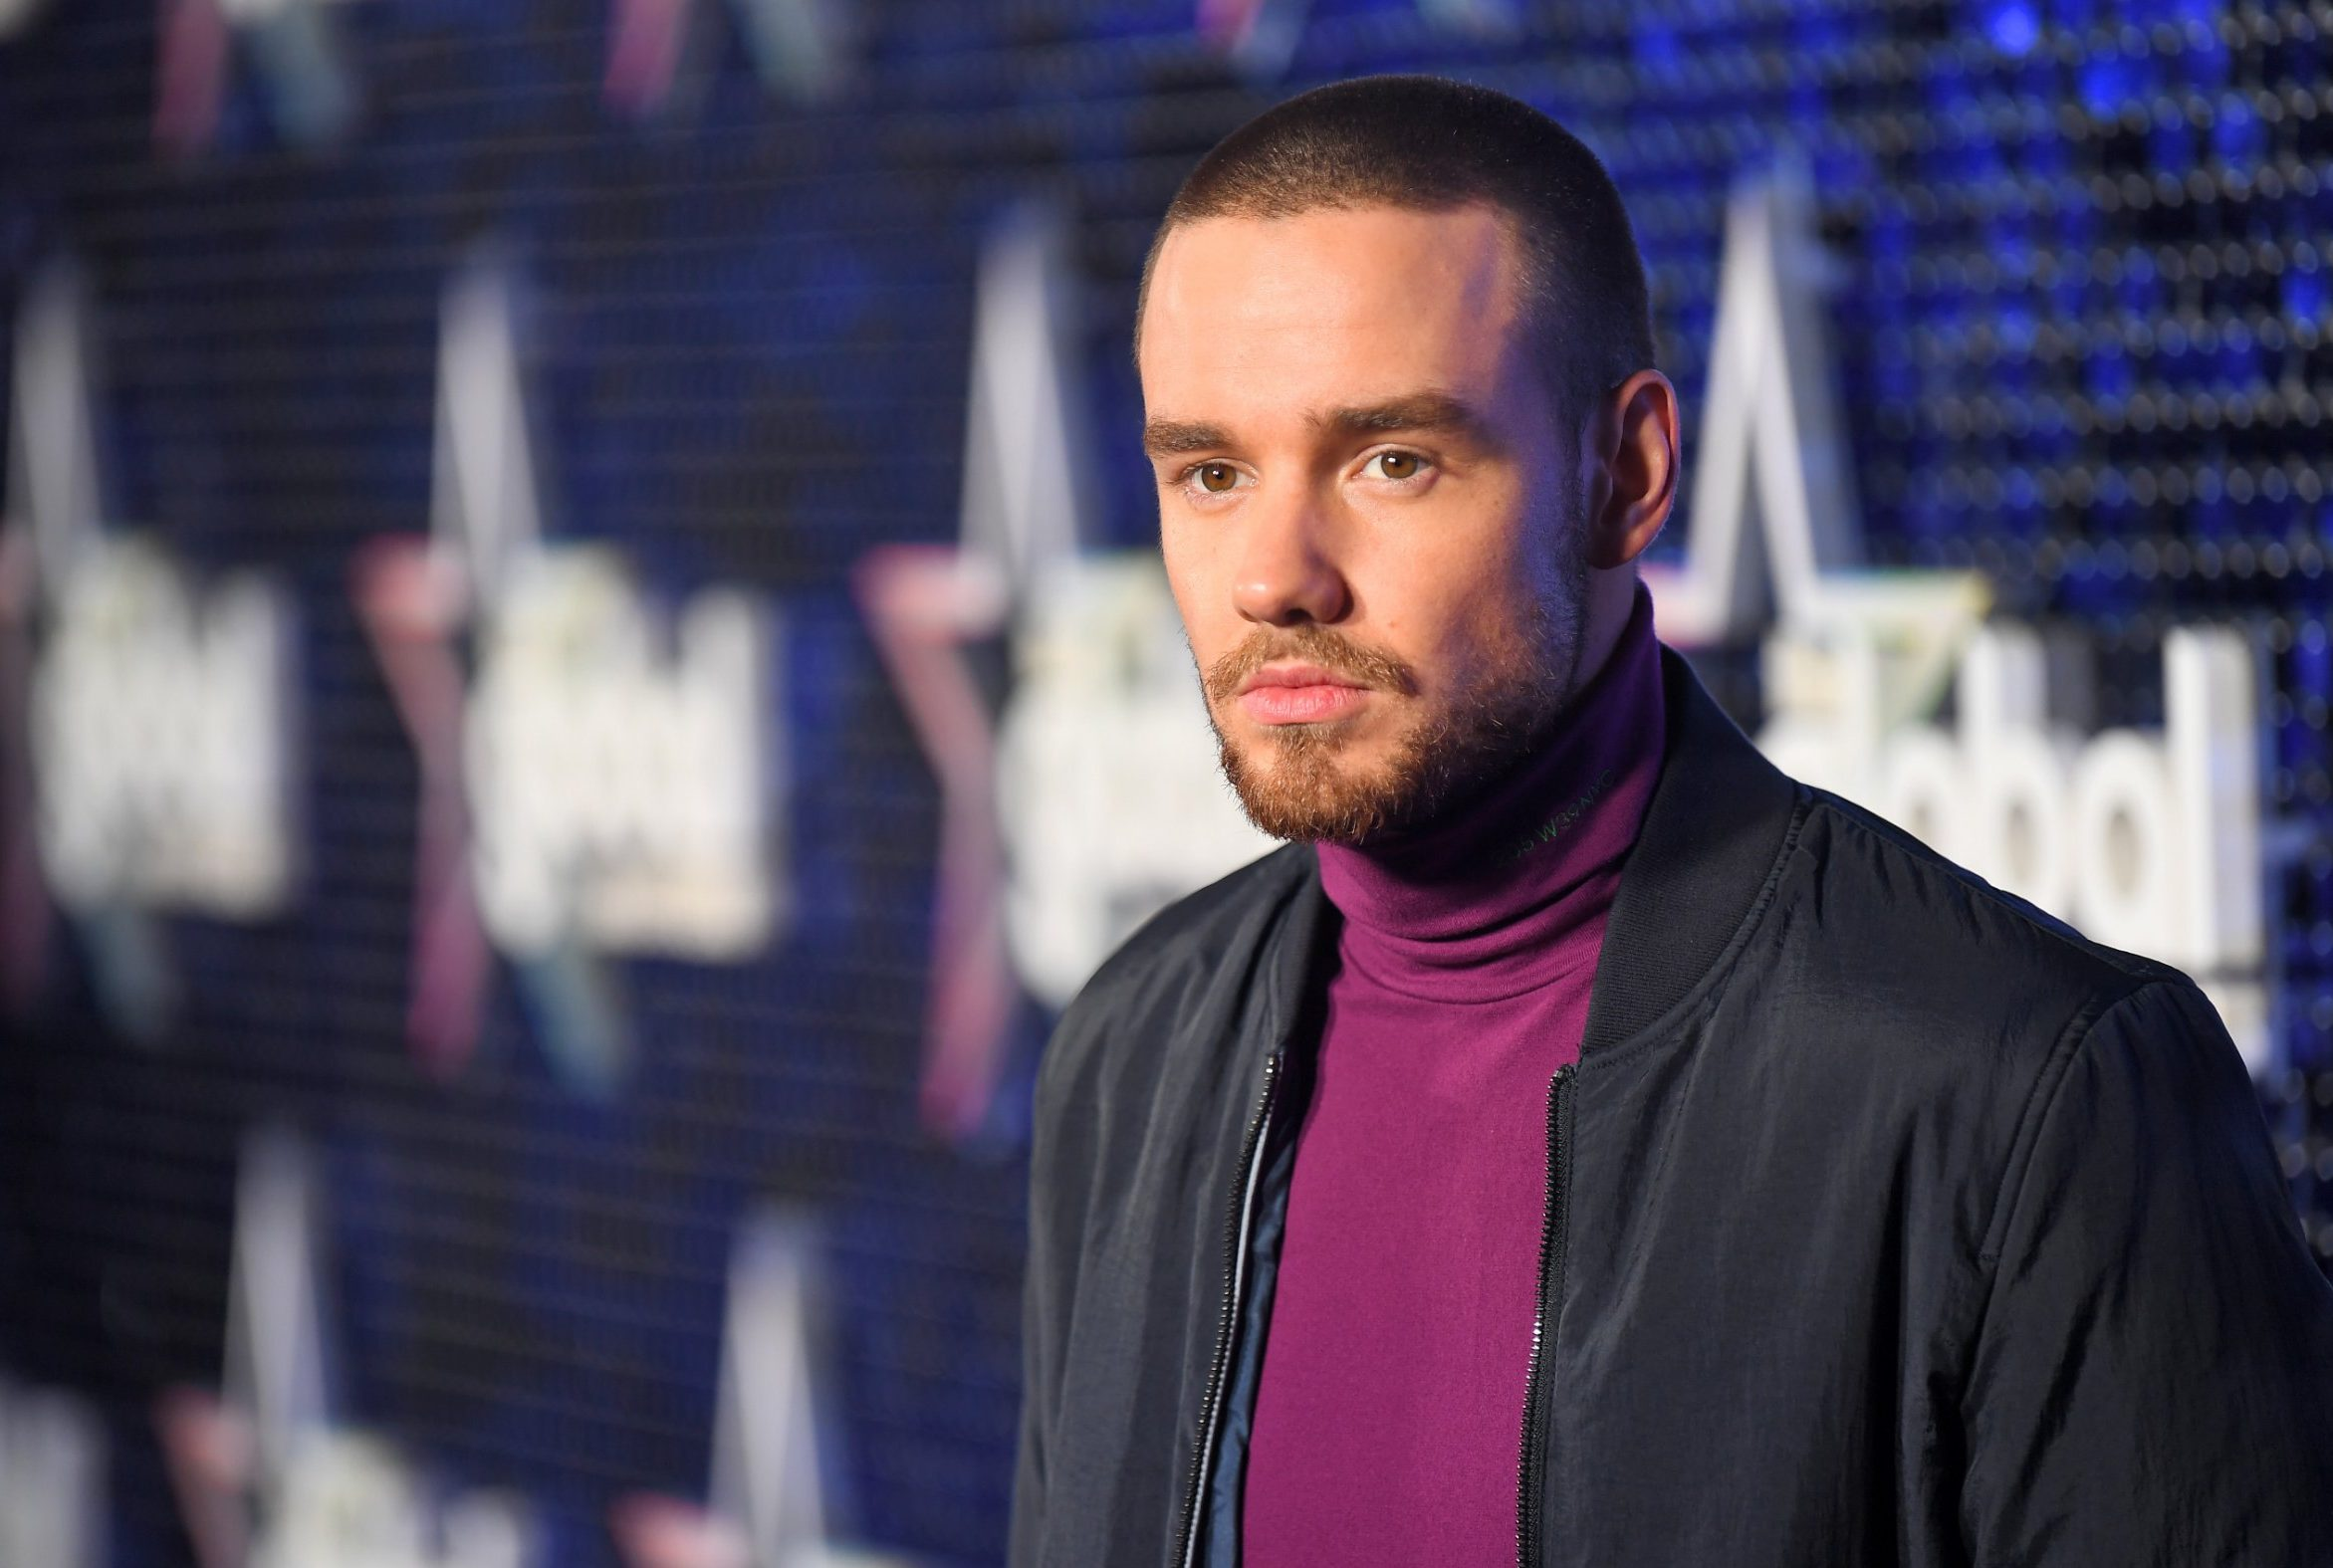 Mandatory Credit: Photo by James Gourley/REX/Shutterstock (9446050cv) Liam Payne The Global Awards, Arrivals, Eventim Apollo, London, UK - 01 Mar 2018